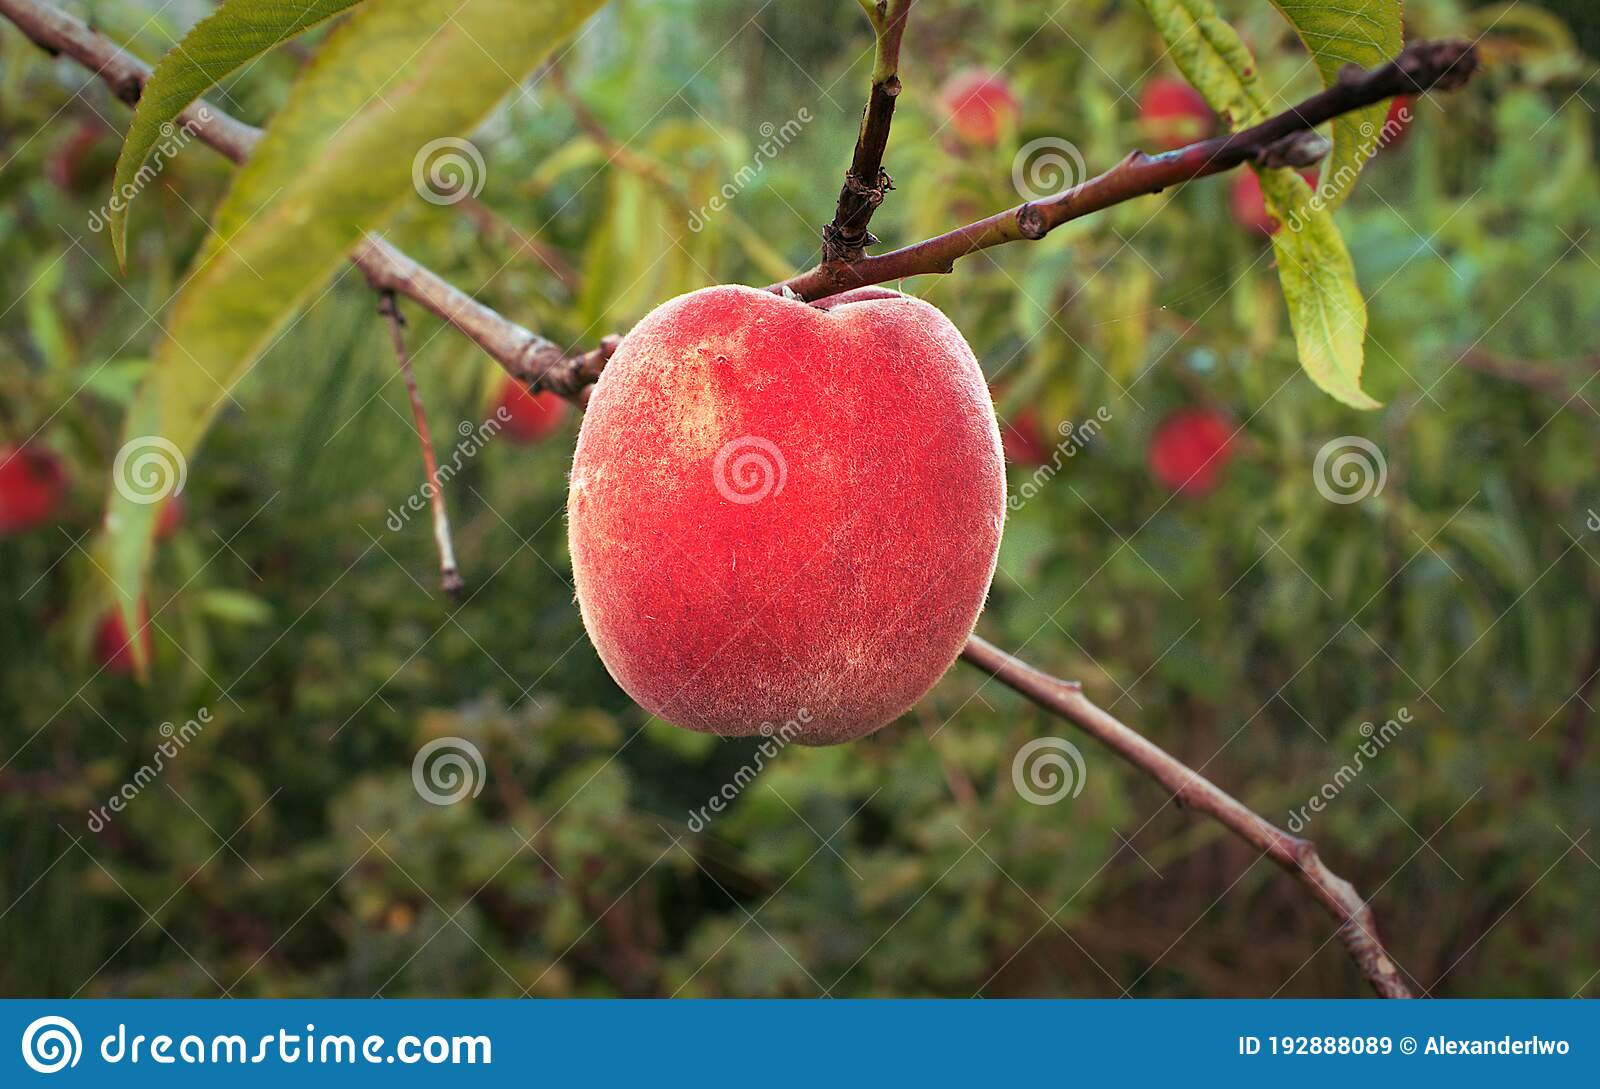 Peach Tree With Ripe Peaches Stock Image Image Of Background Copy 192888089